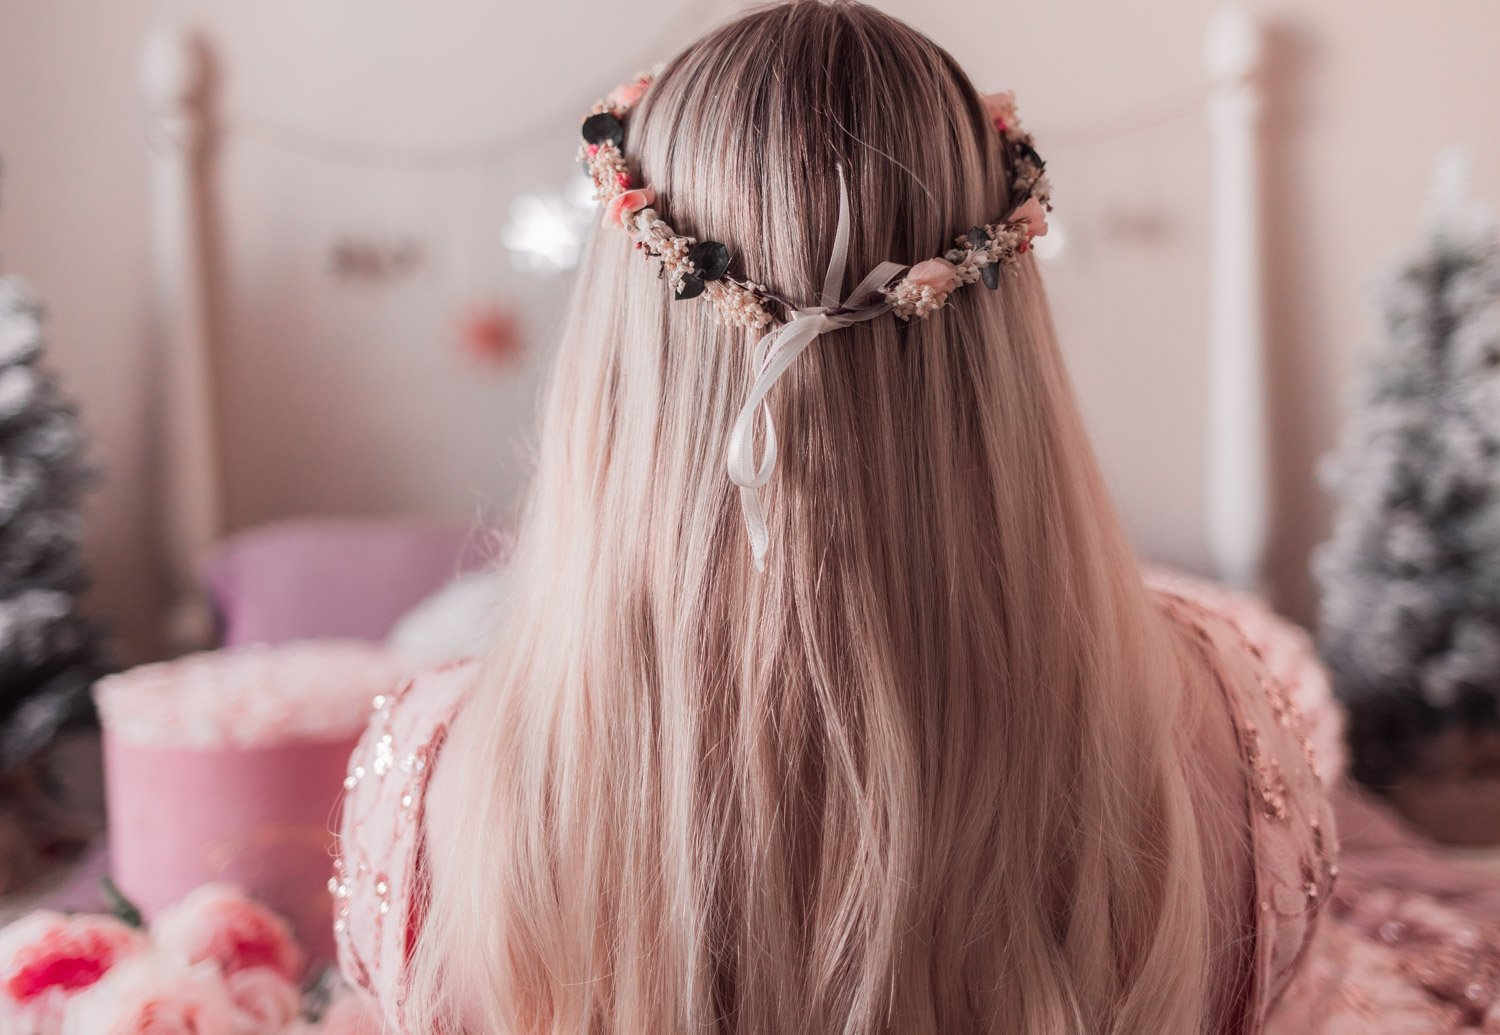 Elizabeth Hugen from Lizzie in Lace shares a flower crown hairstyle